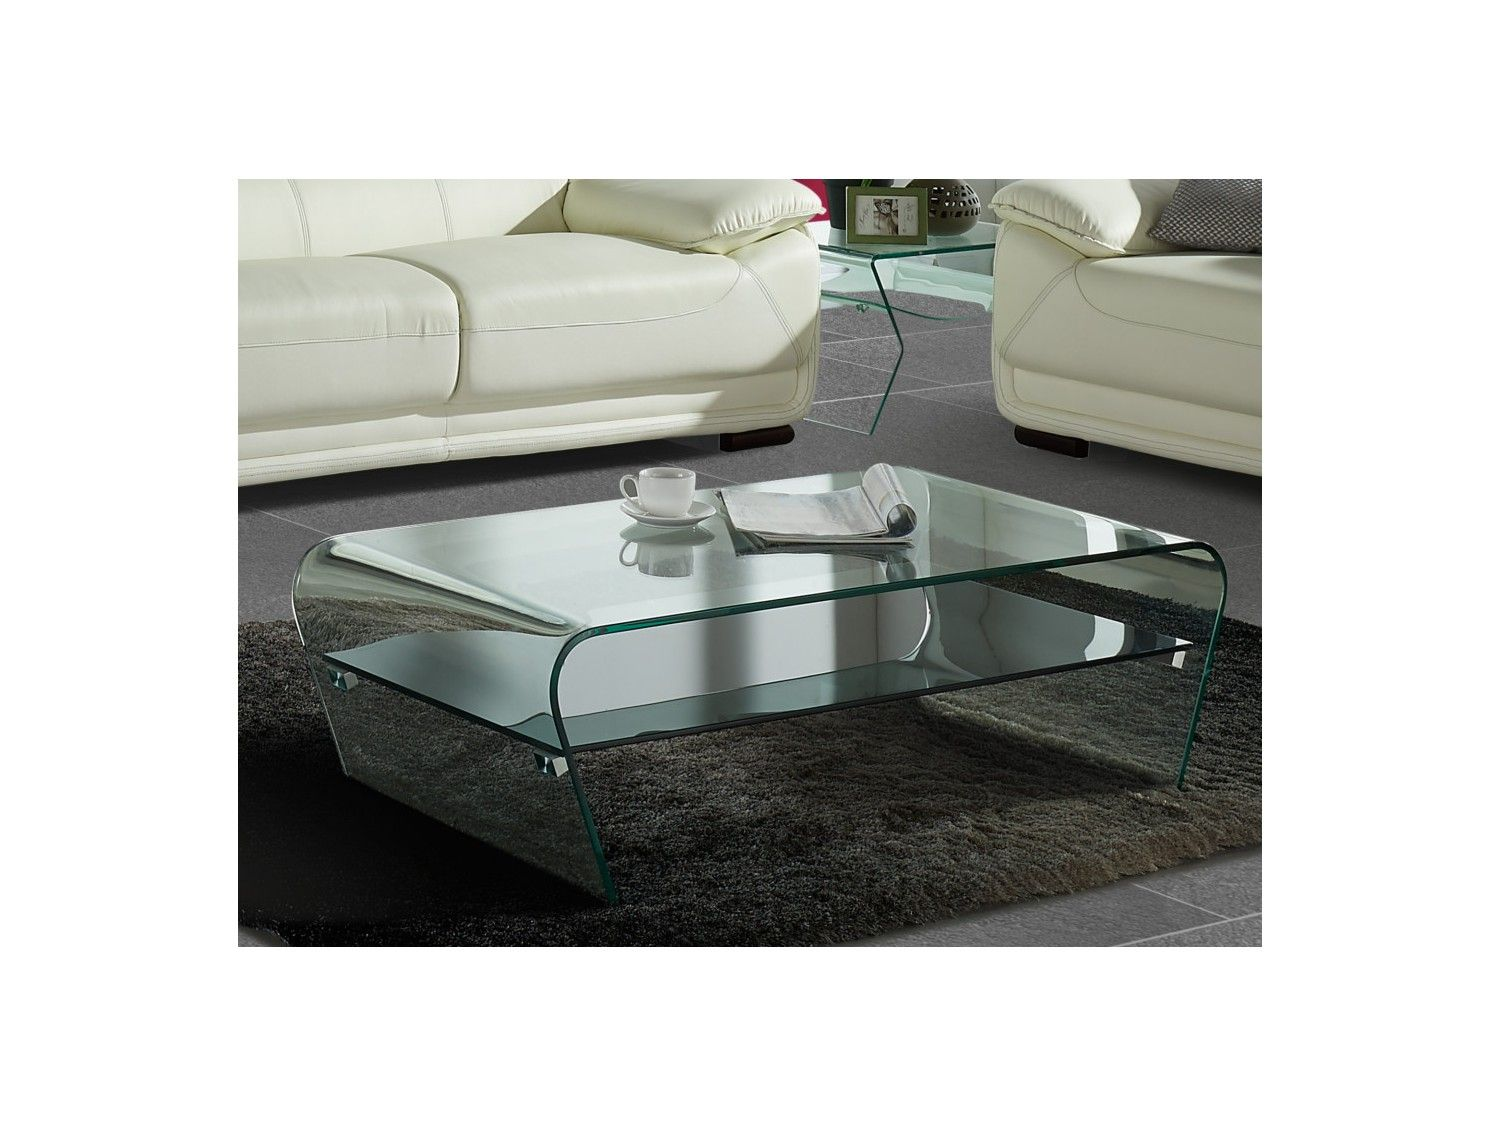 Table Basse Kelly Verre Trempe Tablette Noire Laquee Table Basse Tablettes Noires Table Basse Design